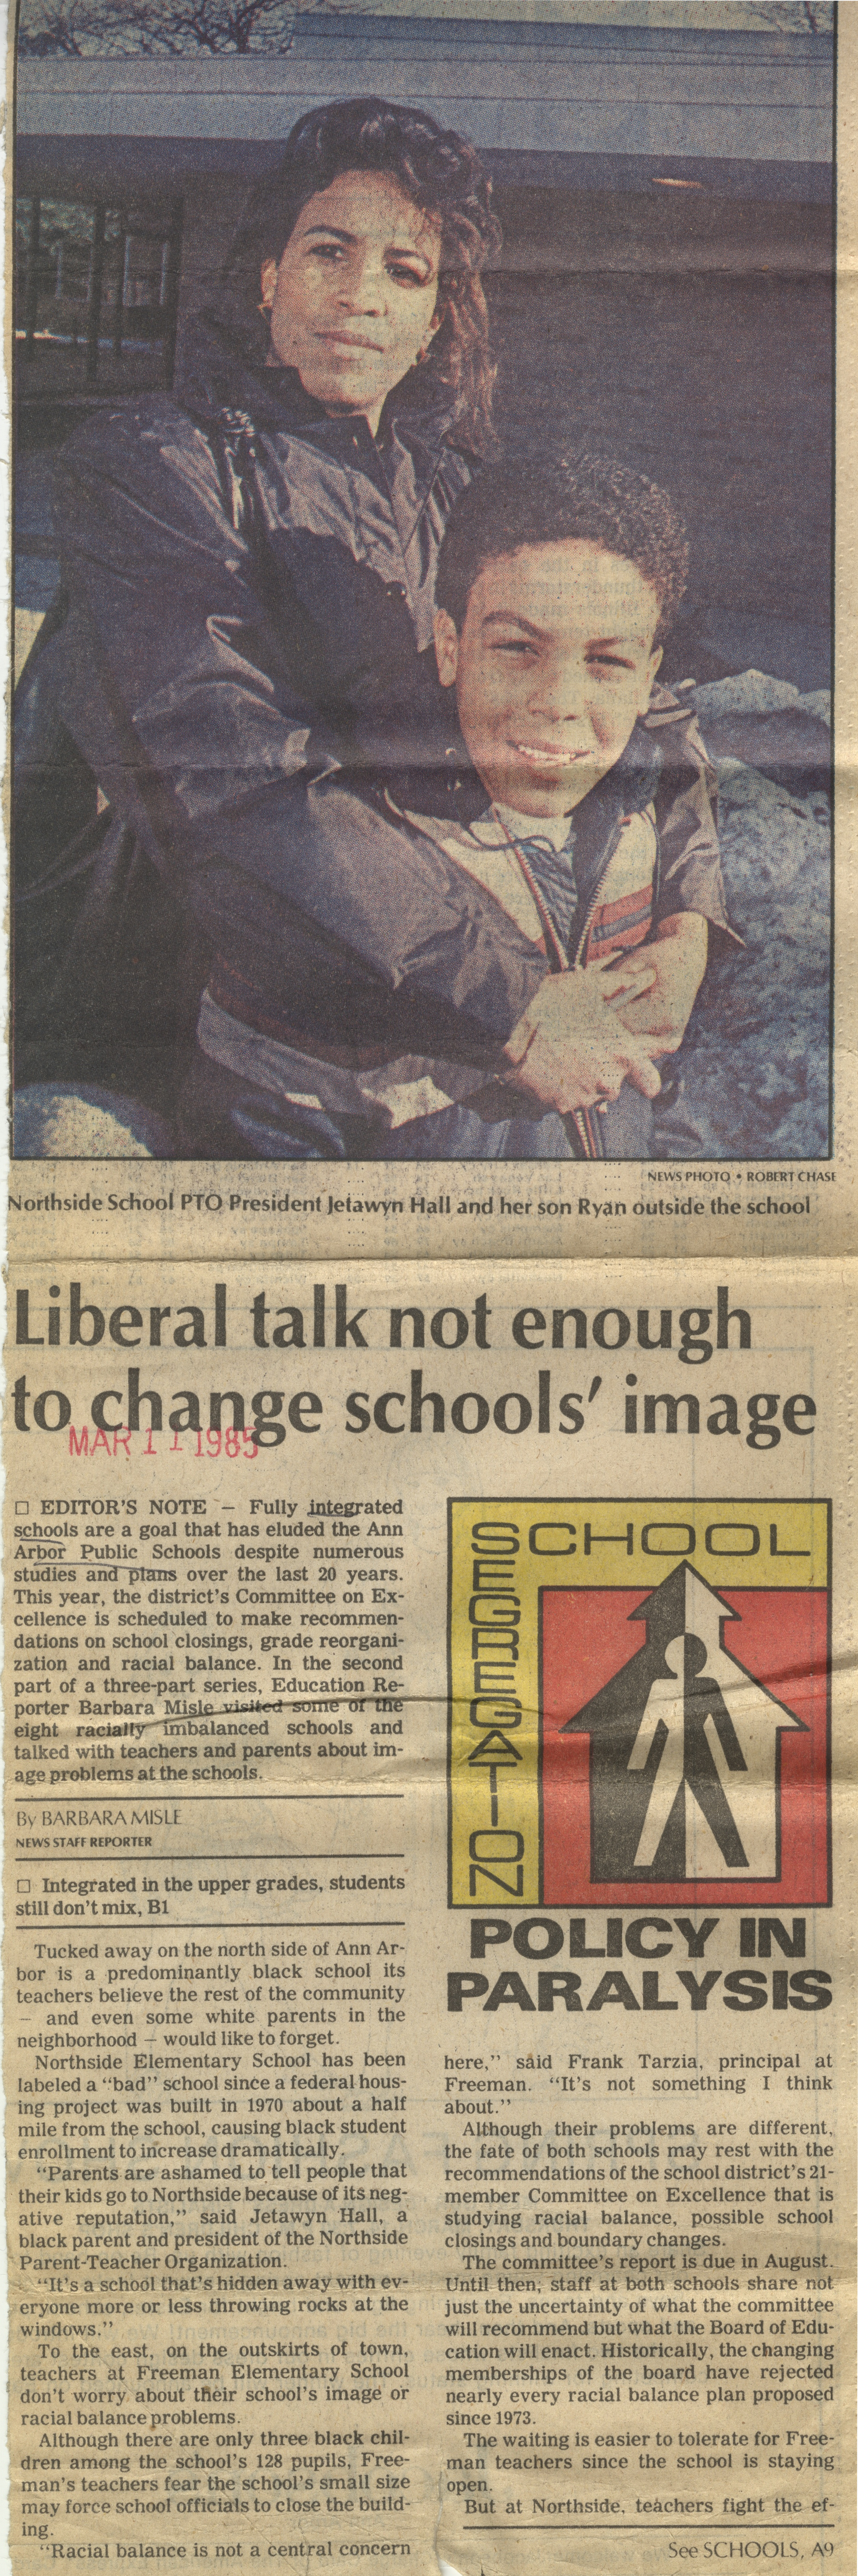 Liberal Talk Not Enough To Change Schools' Image image